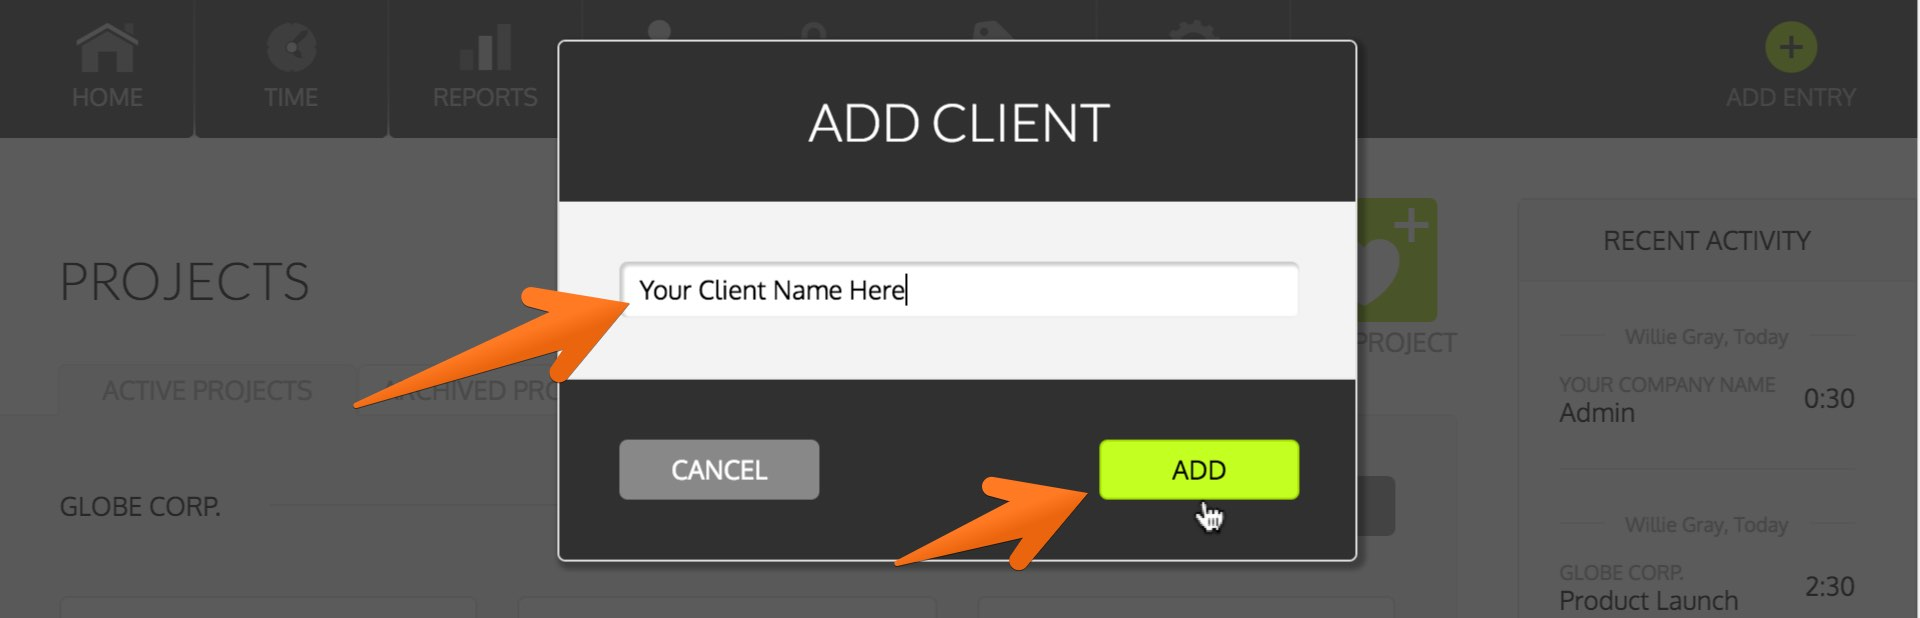 client_03_enter_name_click_add